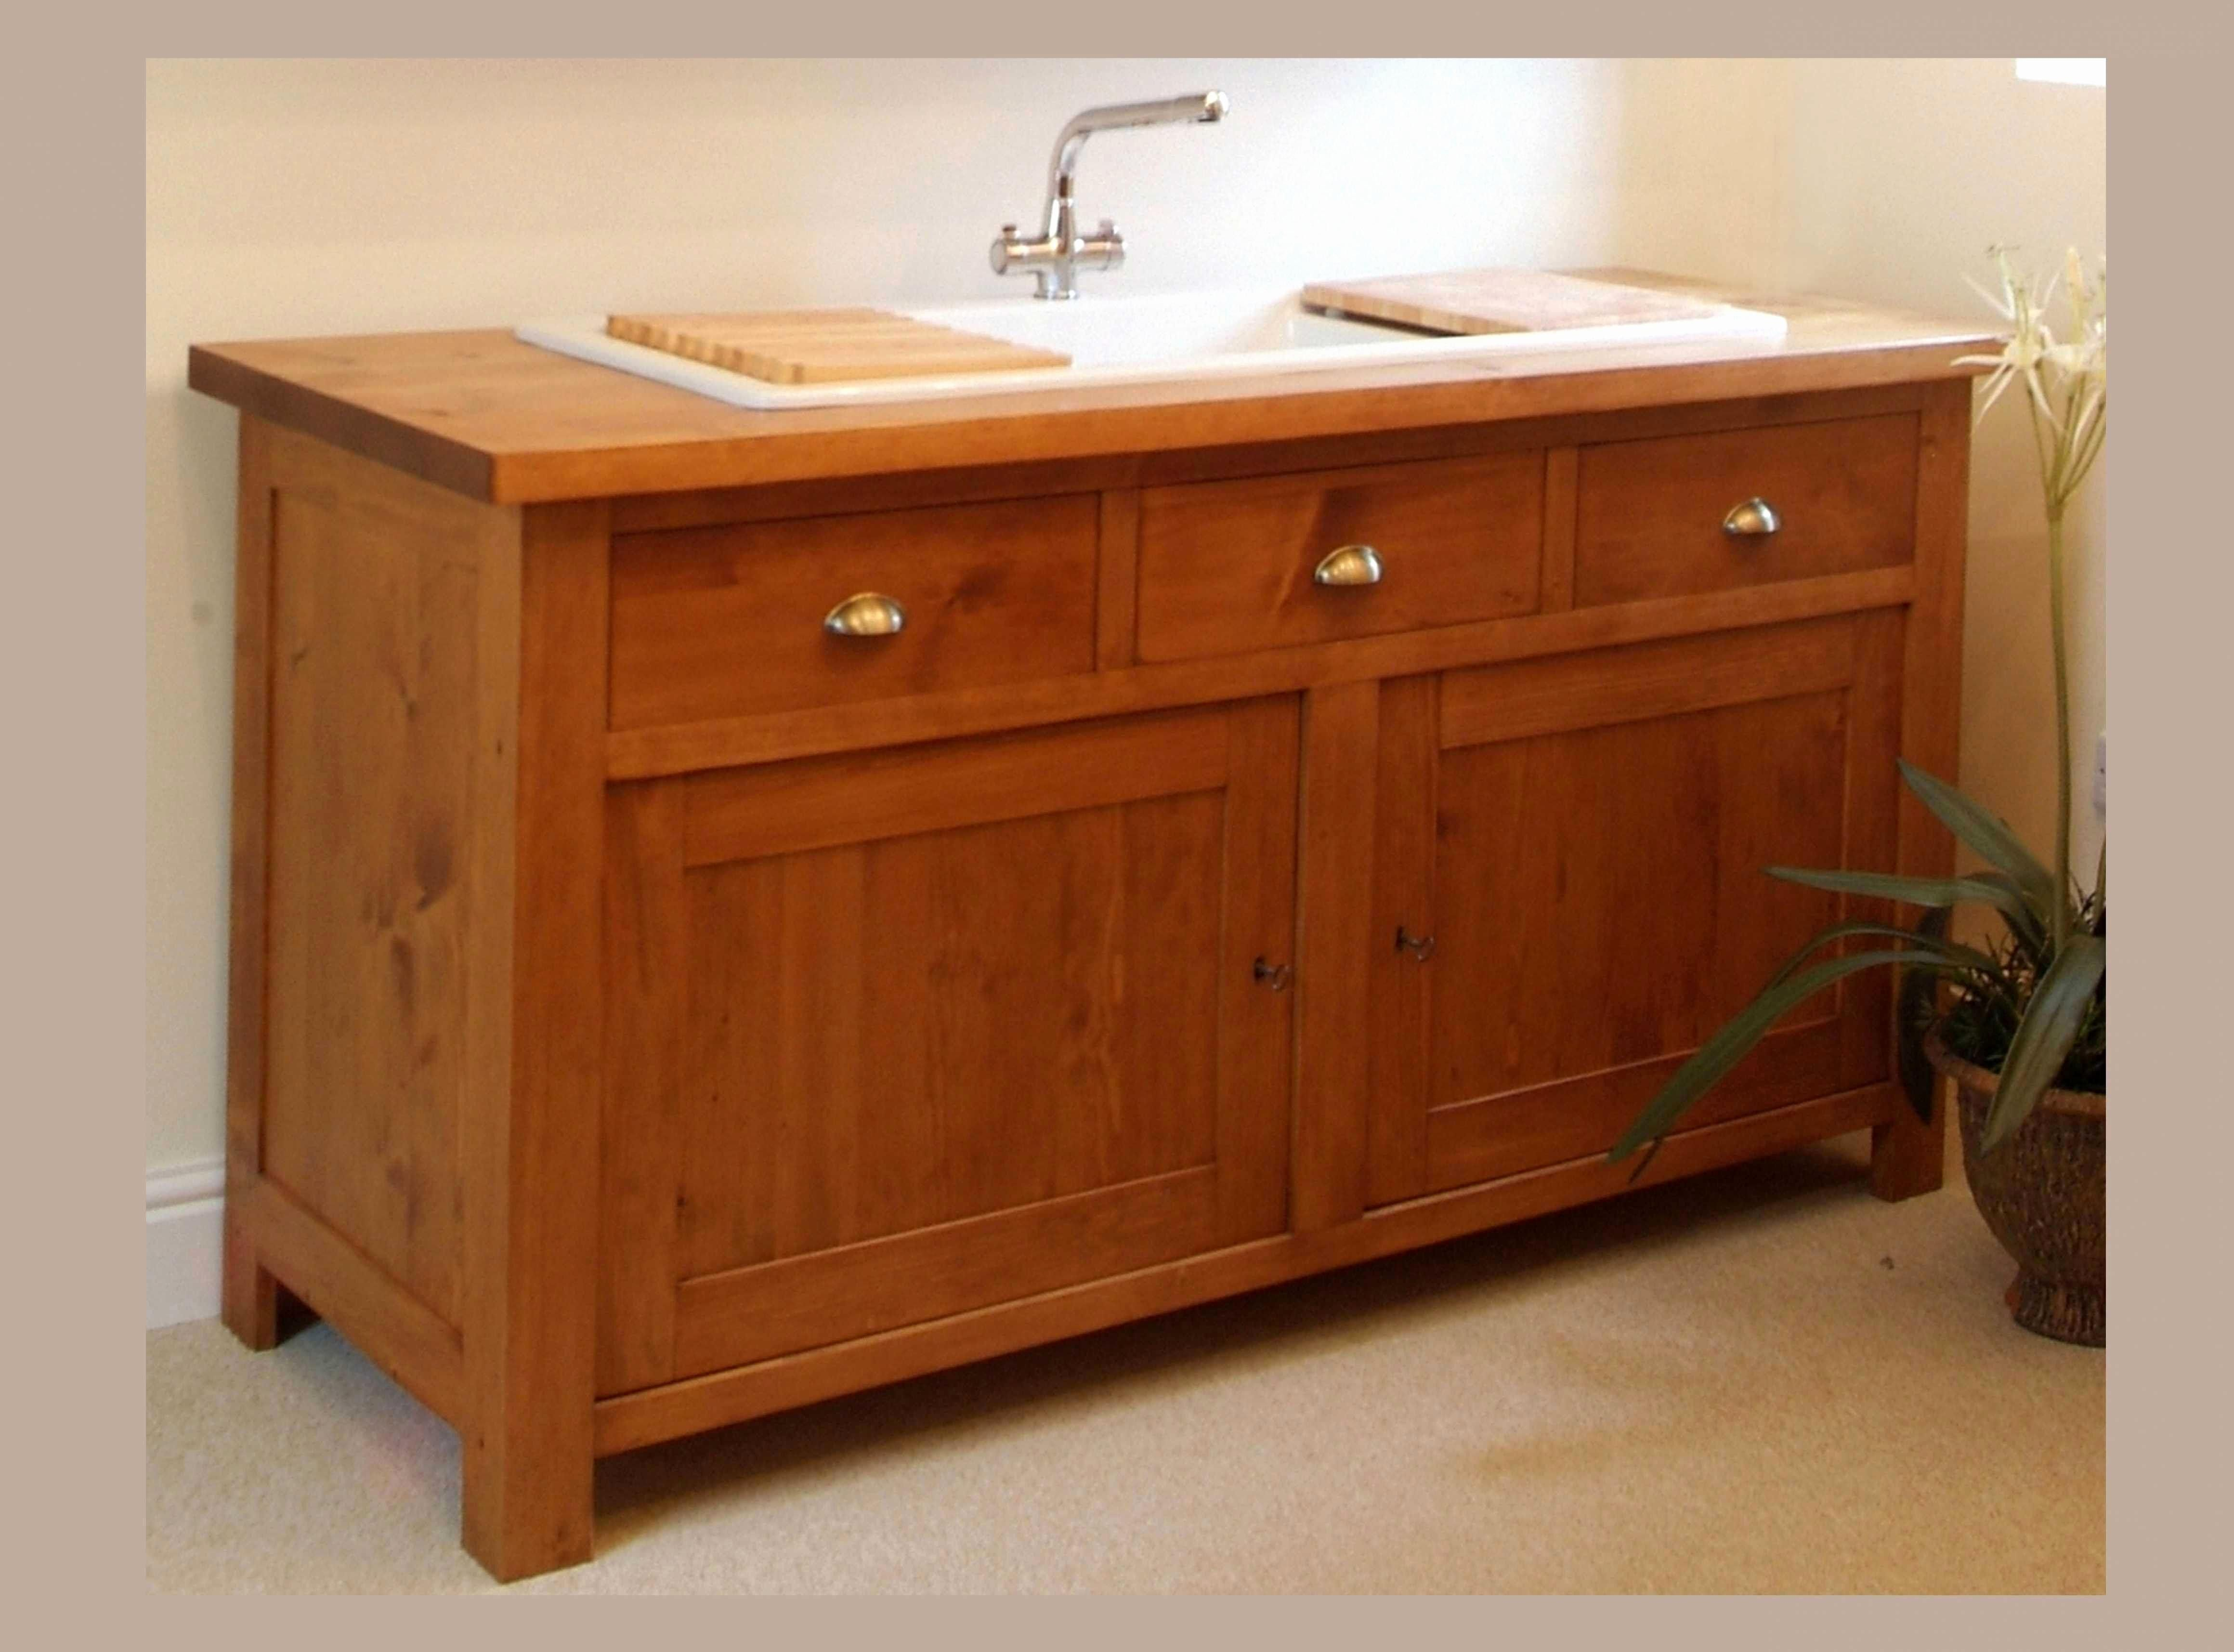 repair kitchen cabinets do it yourself countertops fresh cabinet